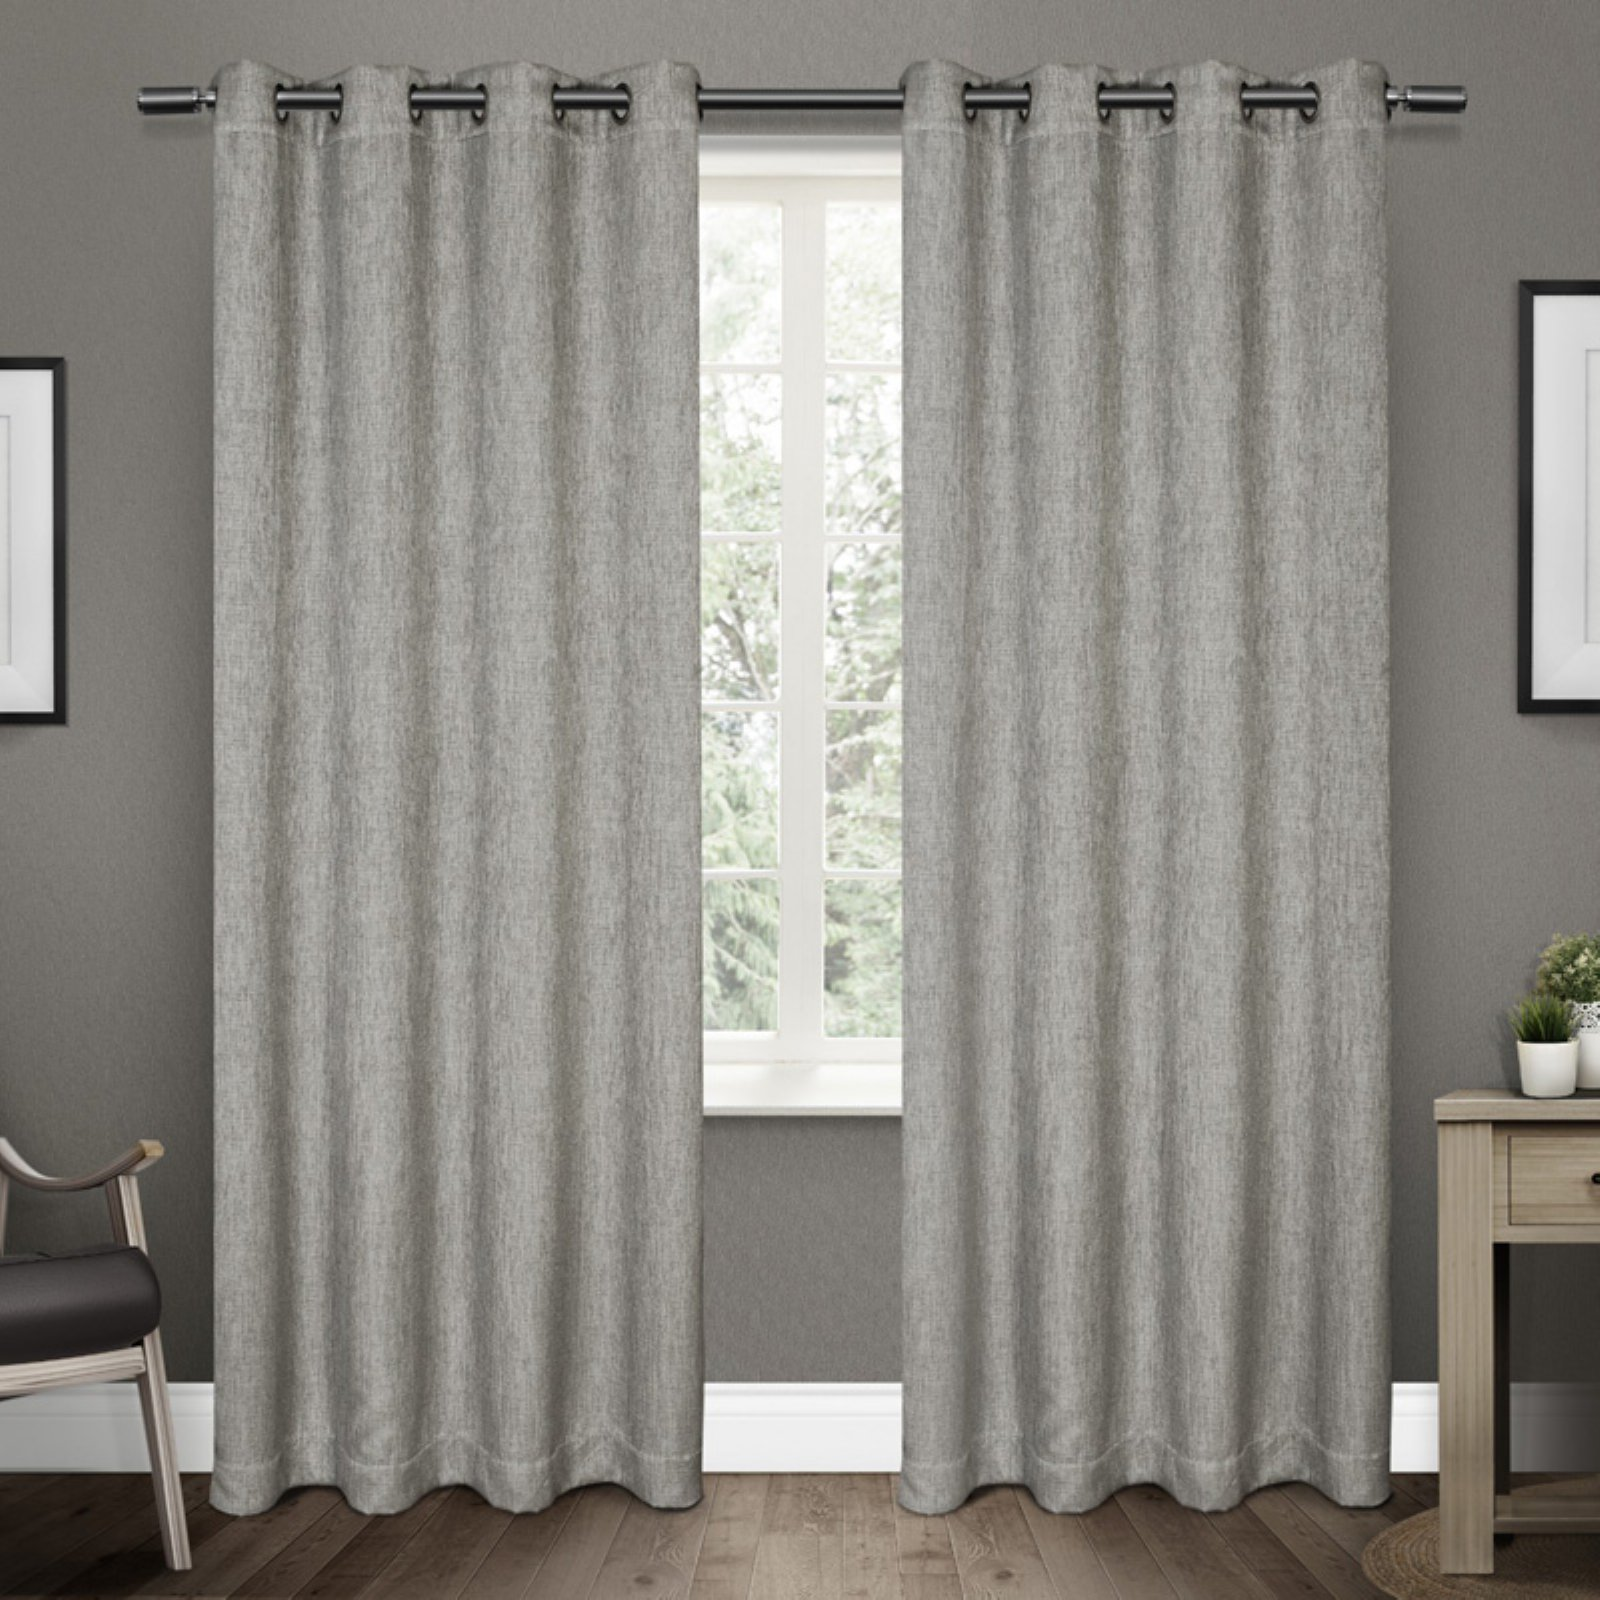 Exclusive Home Curtains 2 Pack Vesta Heavyweight Textured